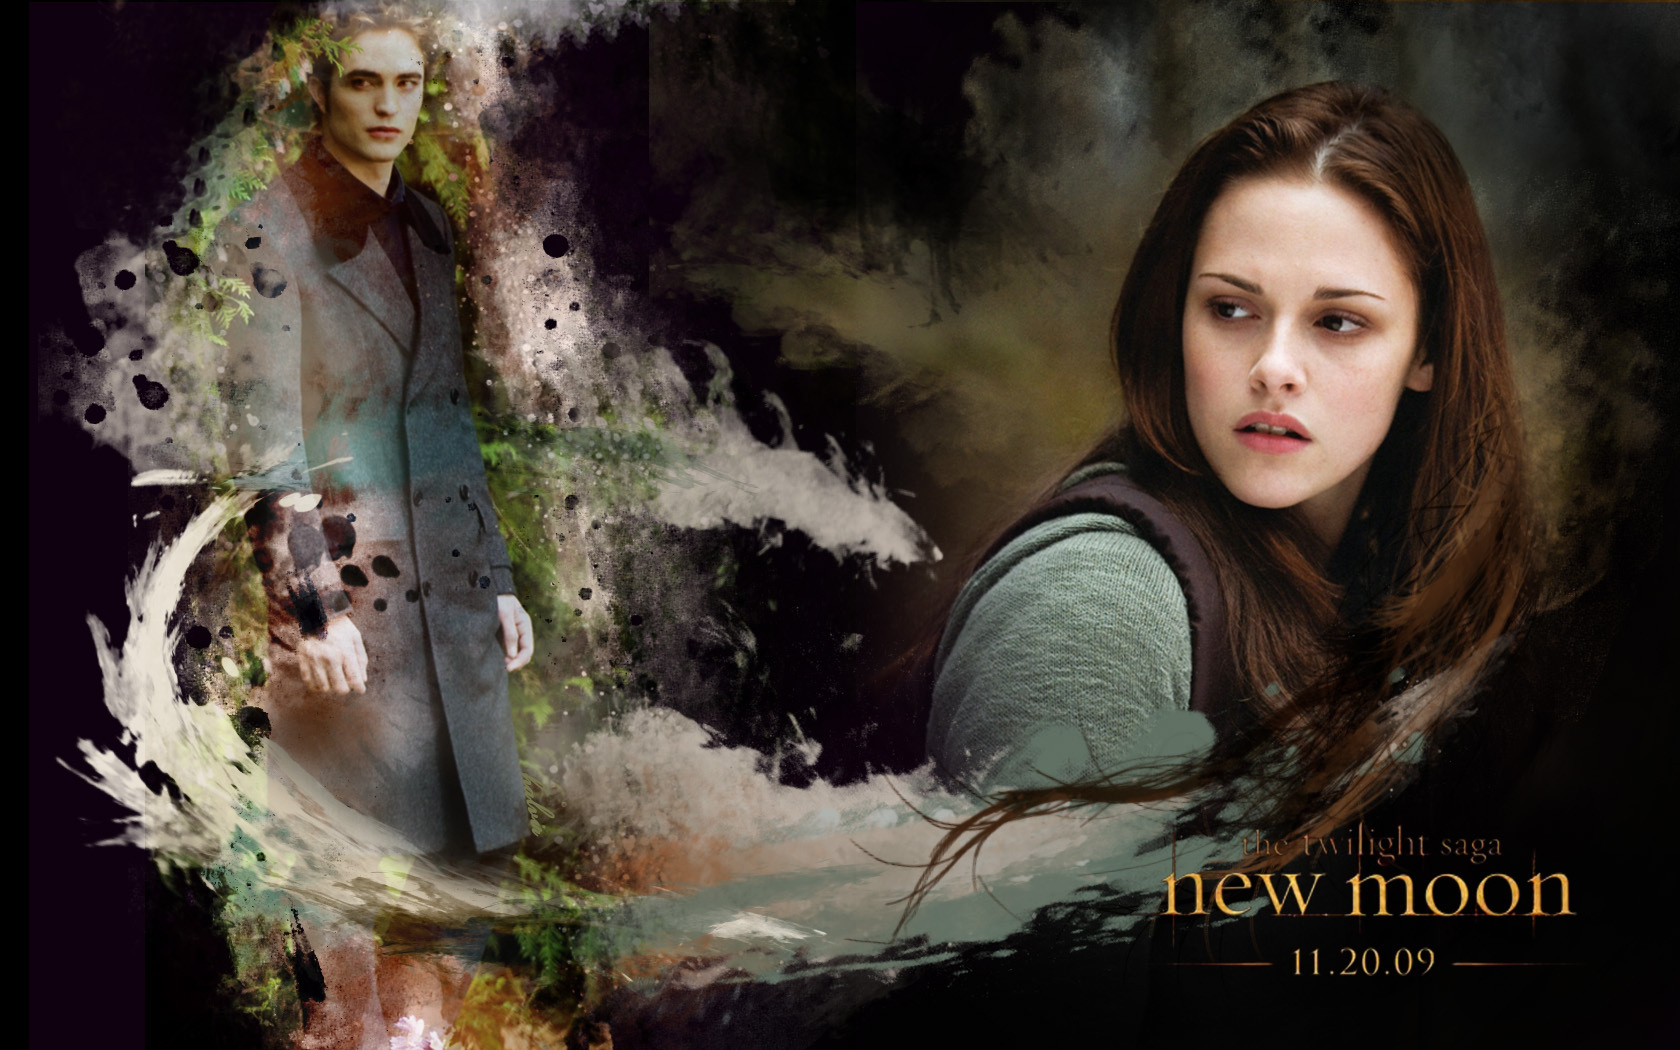 edward amp bella new moon wallpaper ���� twilight series